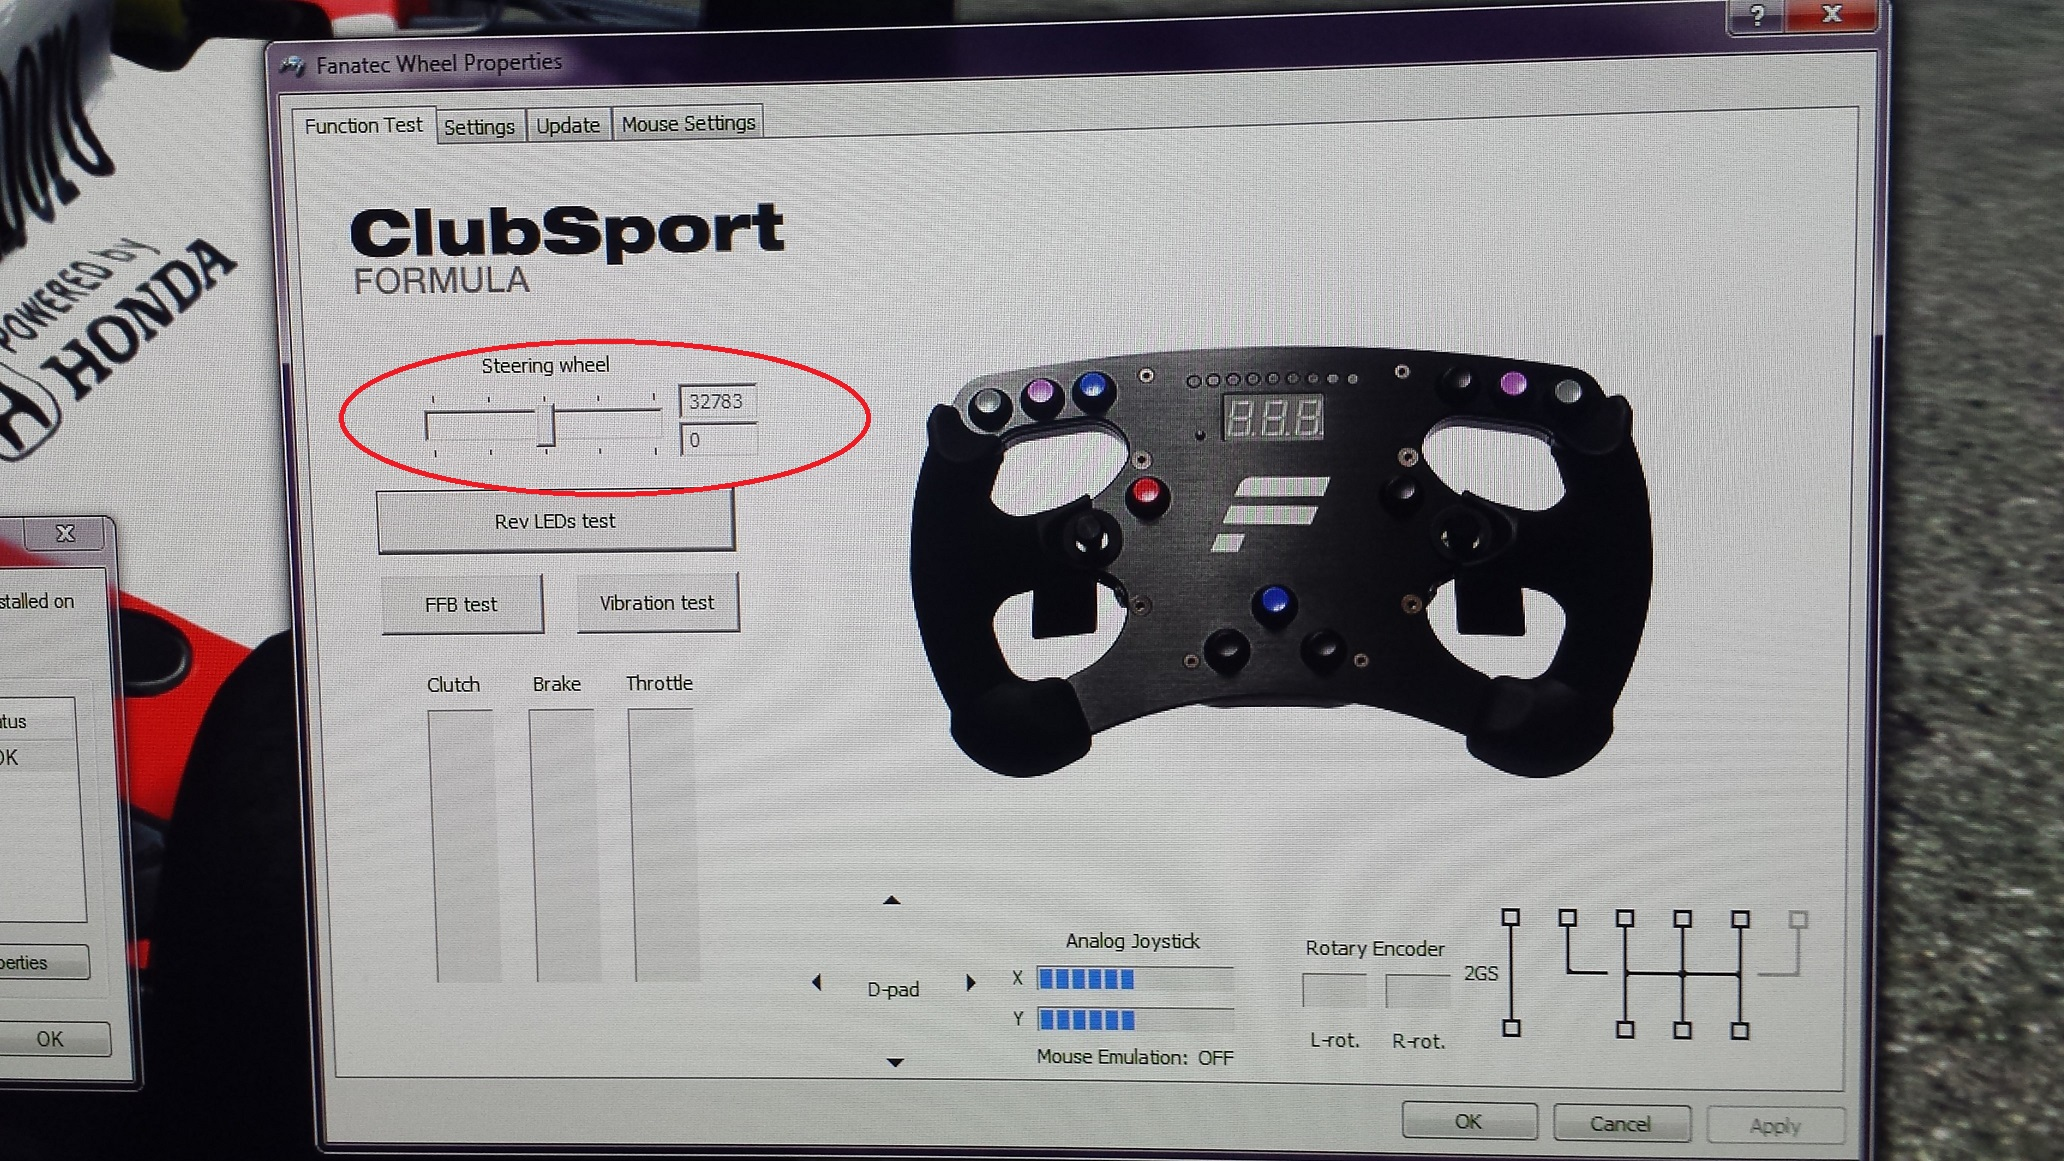 Fanatec clubsport wheelbase losing centre position again